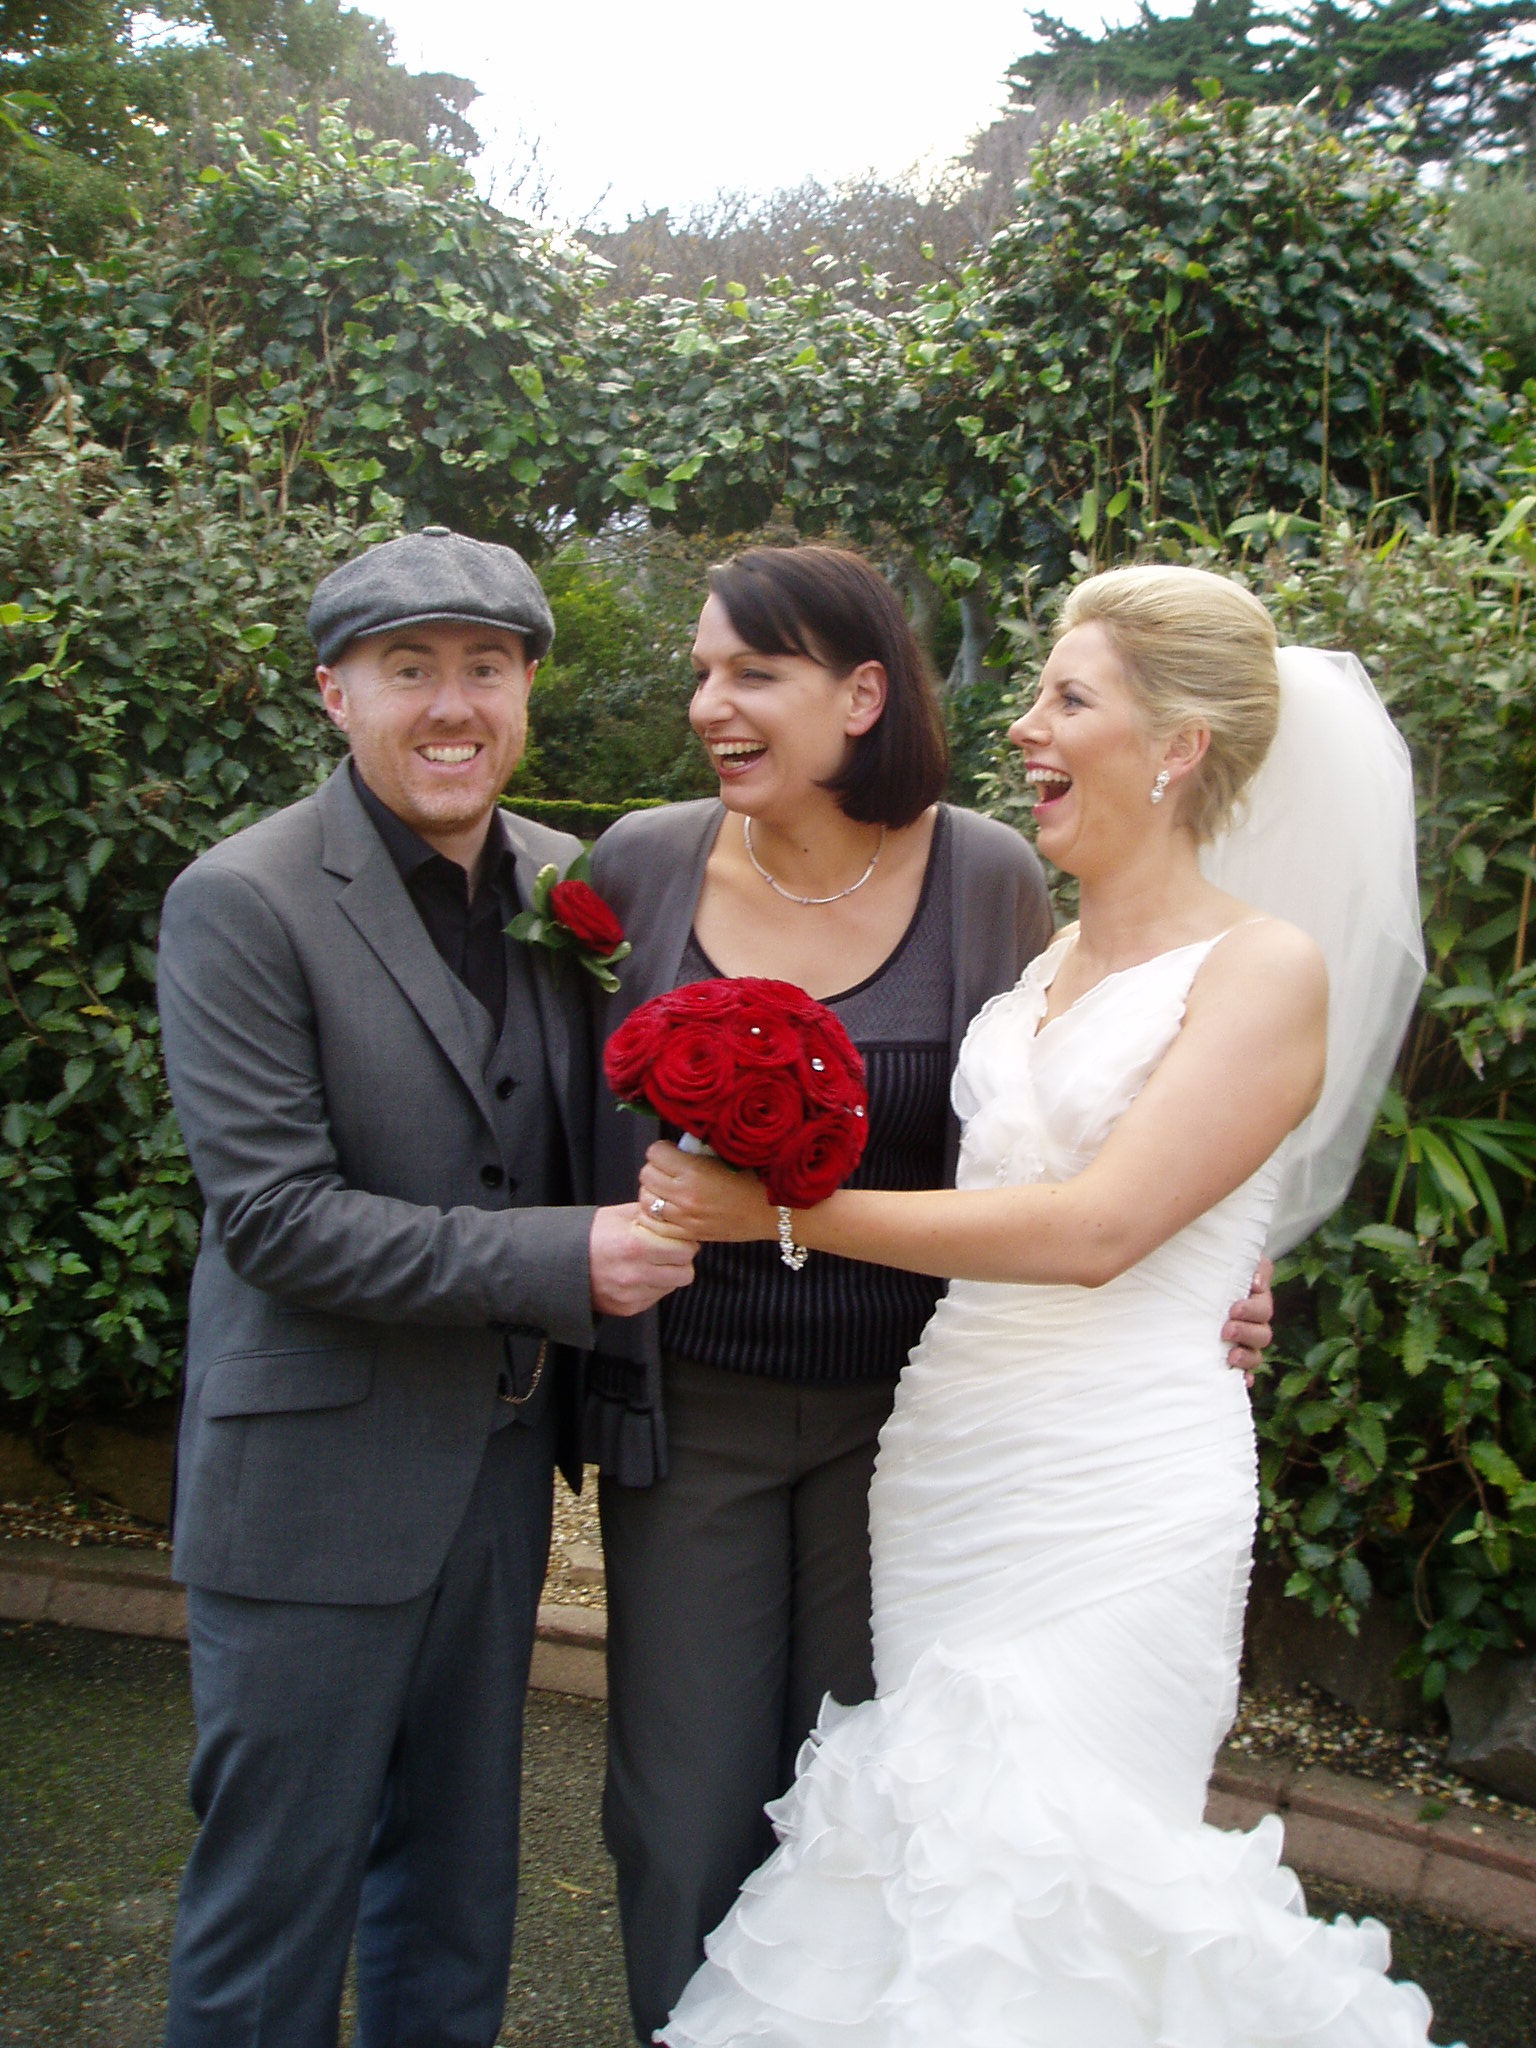 Getting Married in Ireland Romy McAuley Wedding Celebrant Ireland